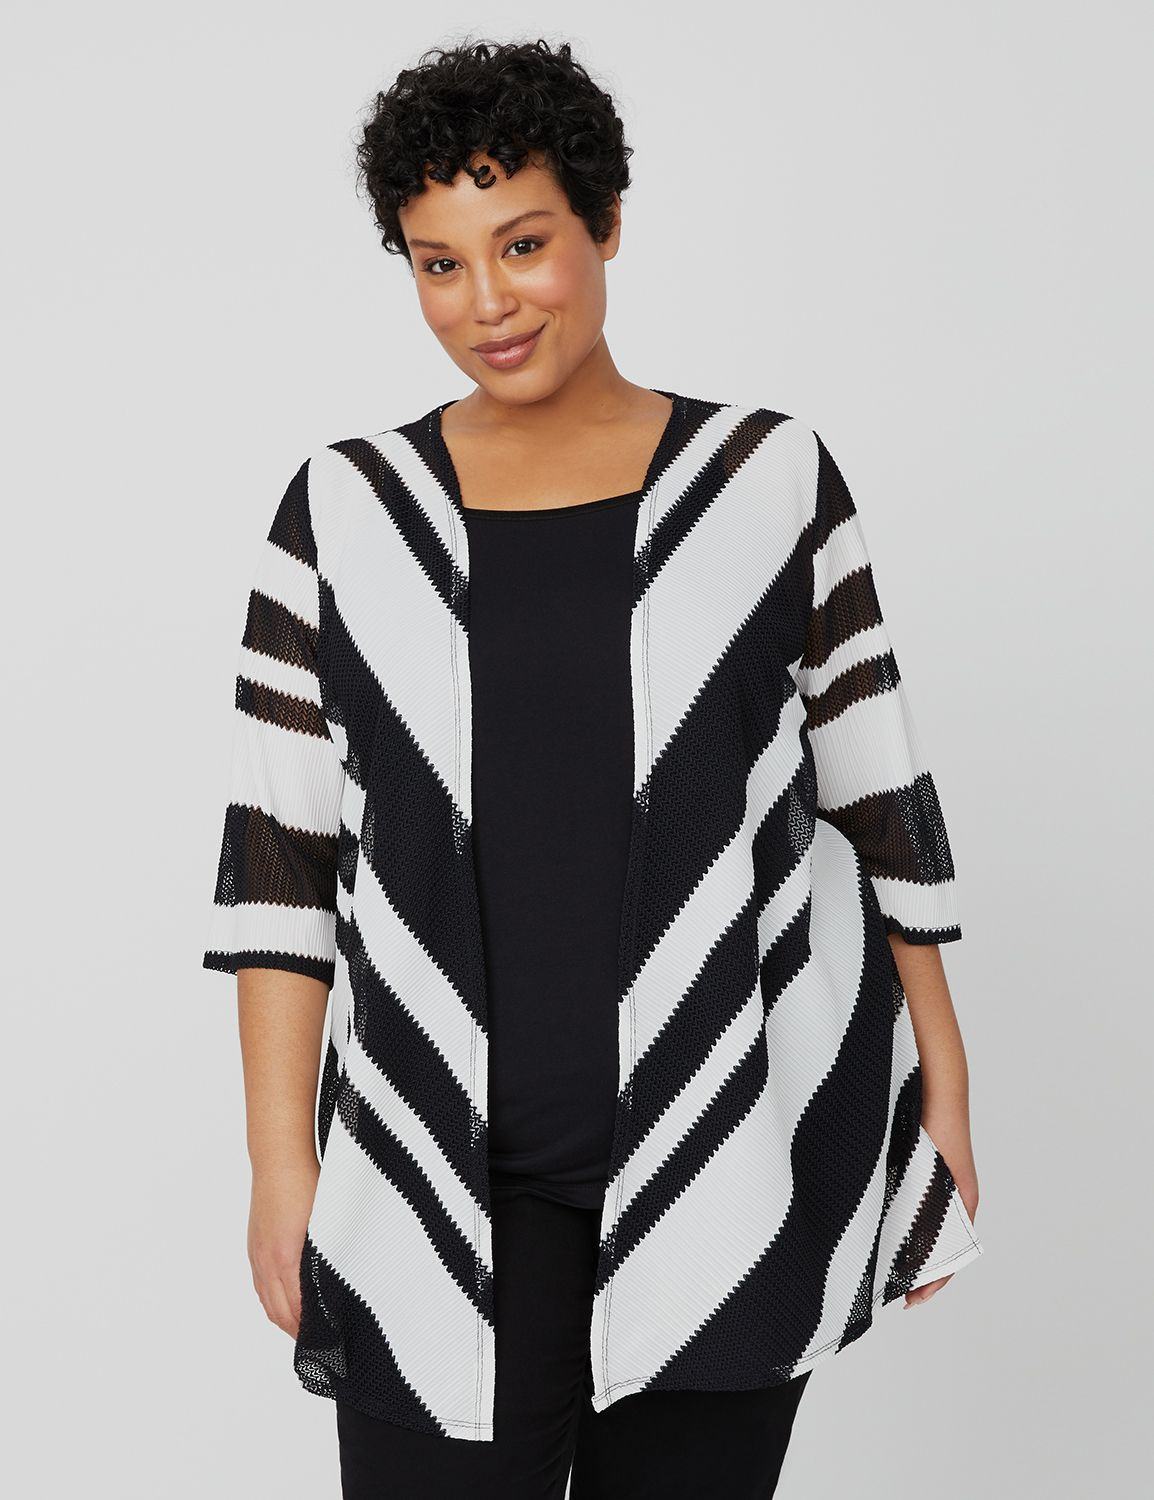 Cascading Herringbone Cardigan 1089908 BLK/WHT HERRINGBONE COLORBL MP-300099904